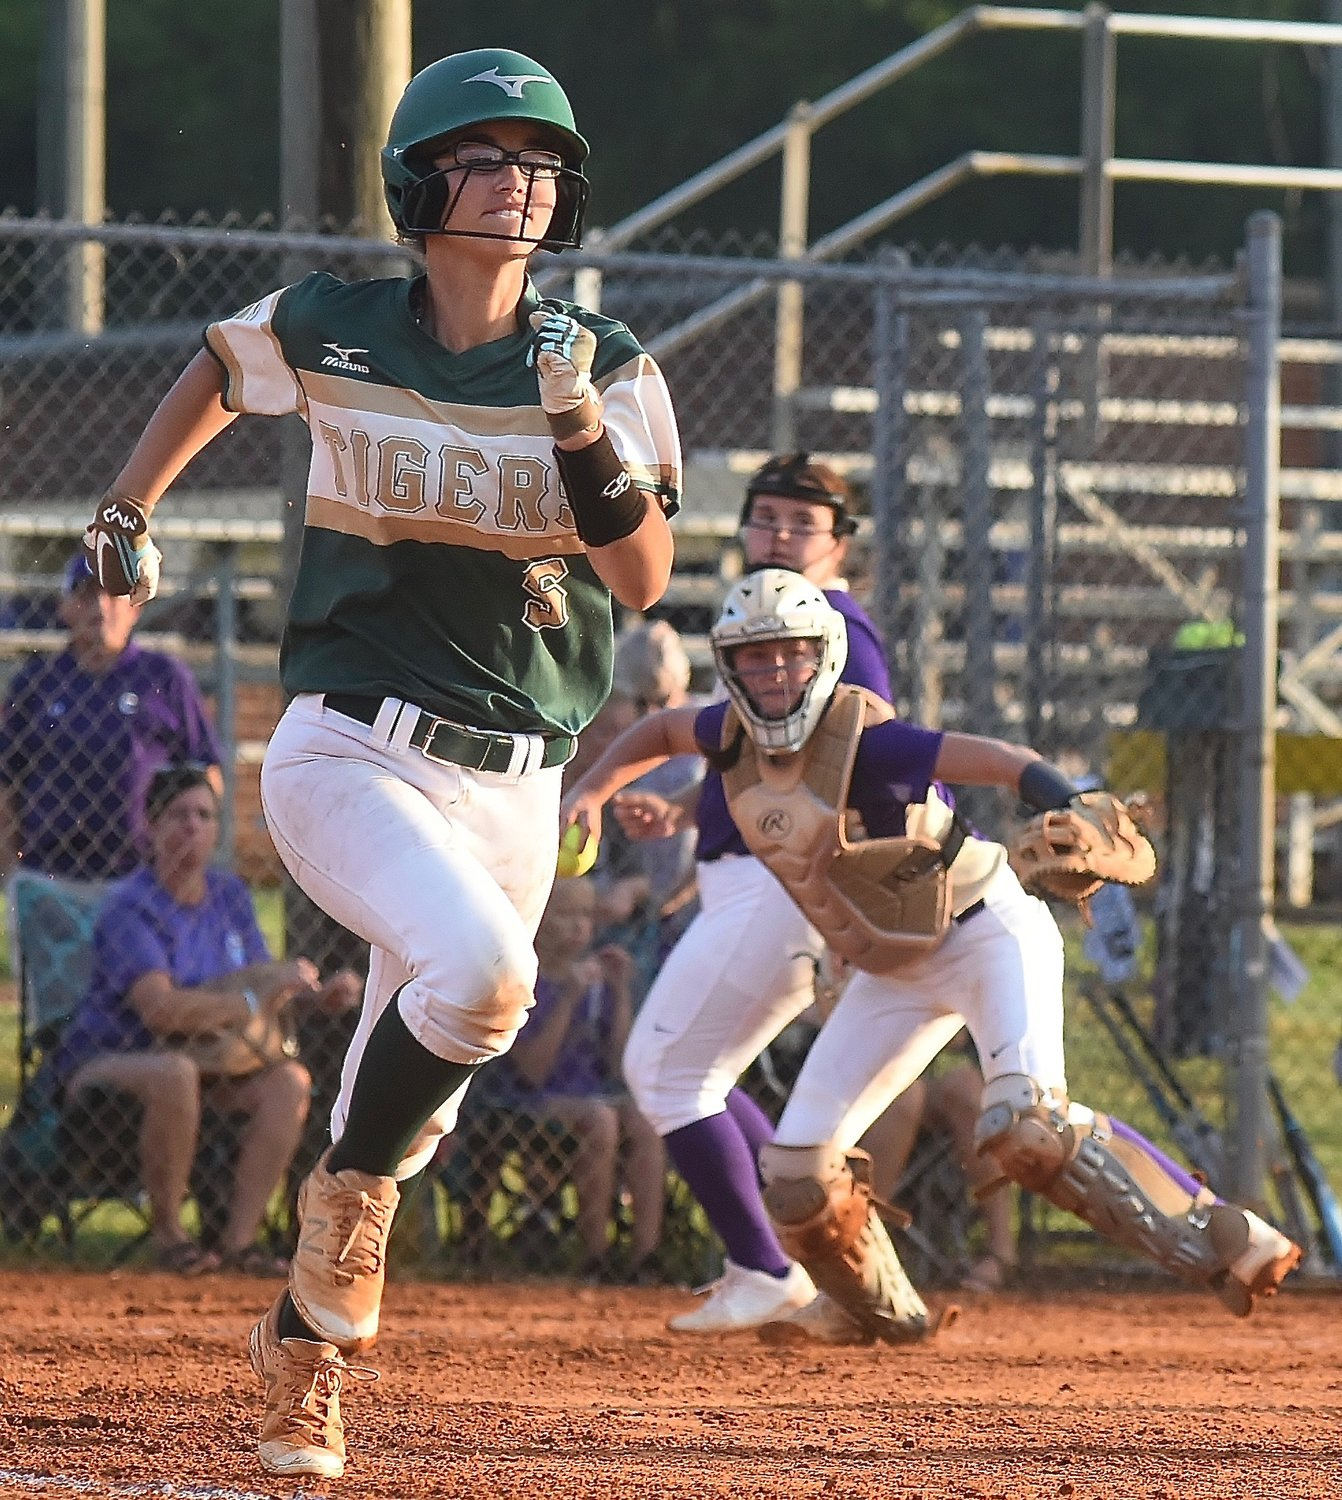 Adairsville outfielder Makayla Wade runs up the first-base line after a bunt, while Cartersville catcher Lauren McElhaney prepares to successfully throw her out.